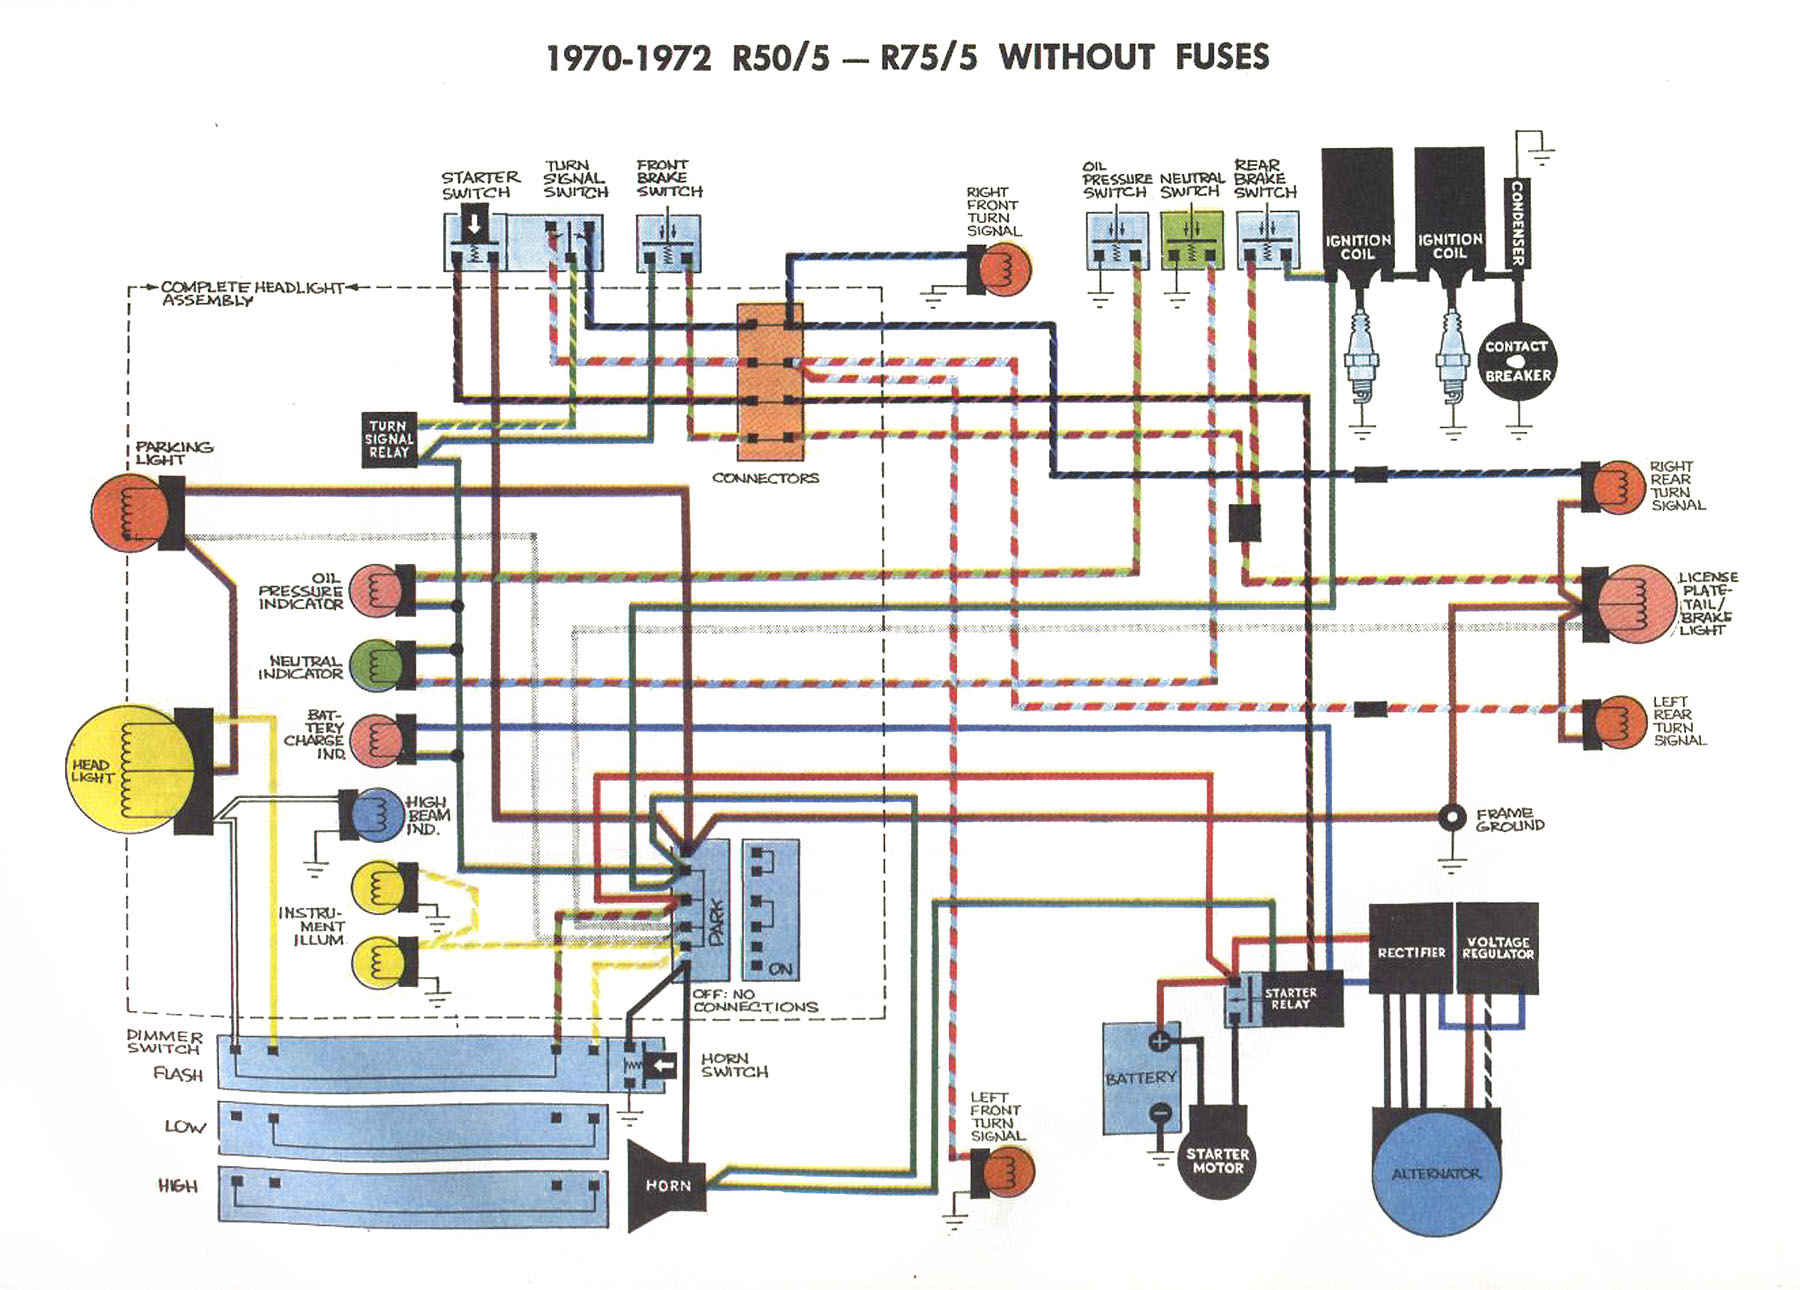 R R Without Fuses on 1978 Honda Goldwing Wiring Diagram 2003